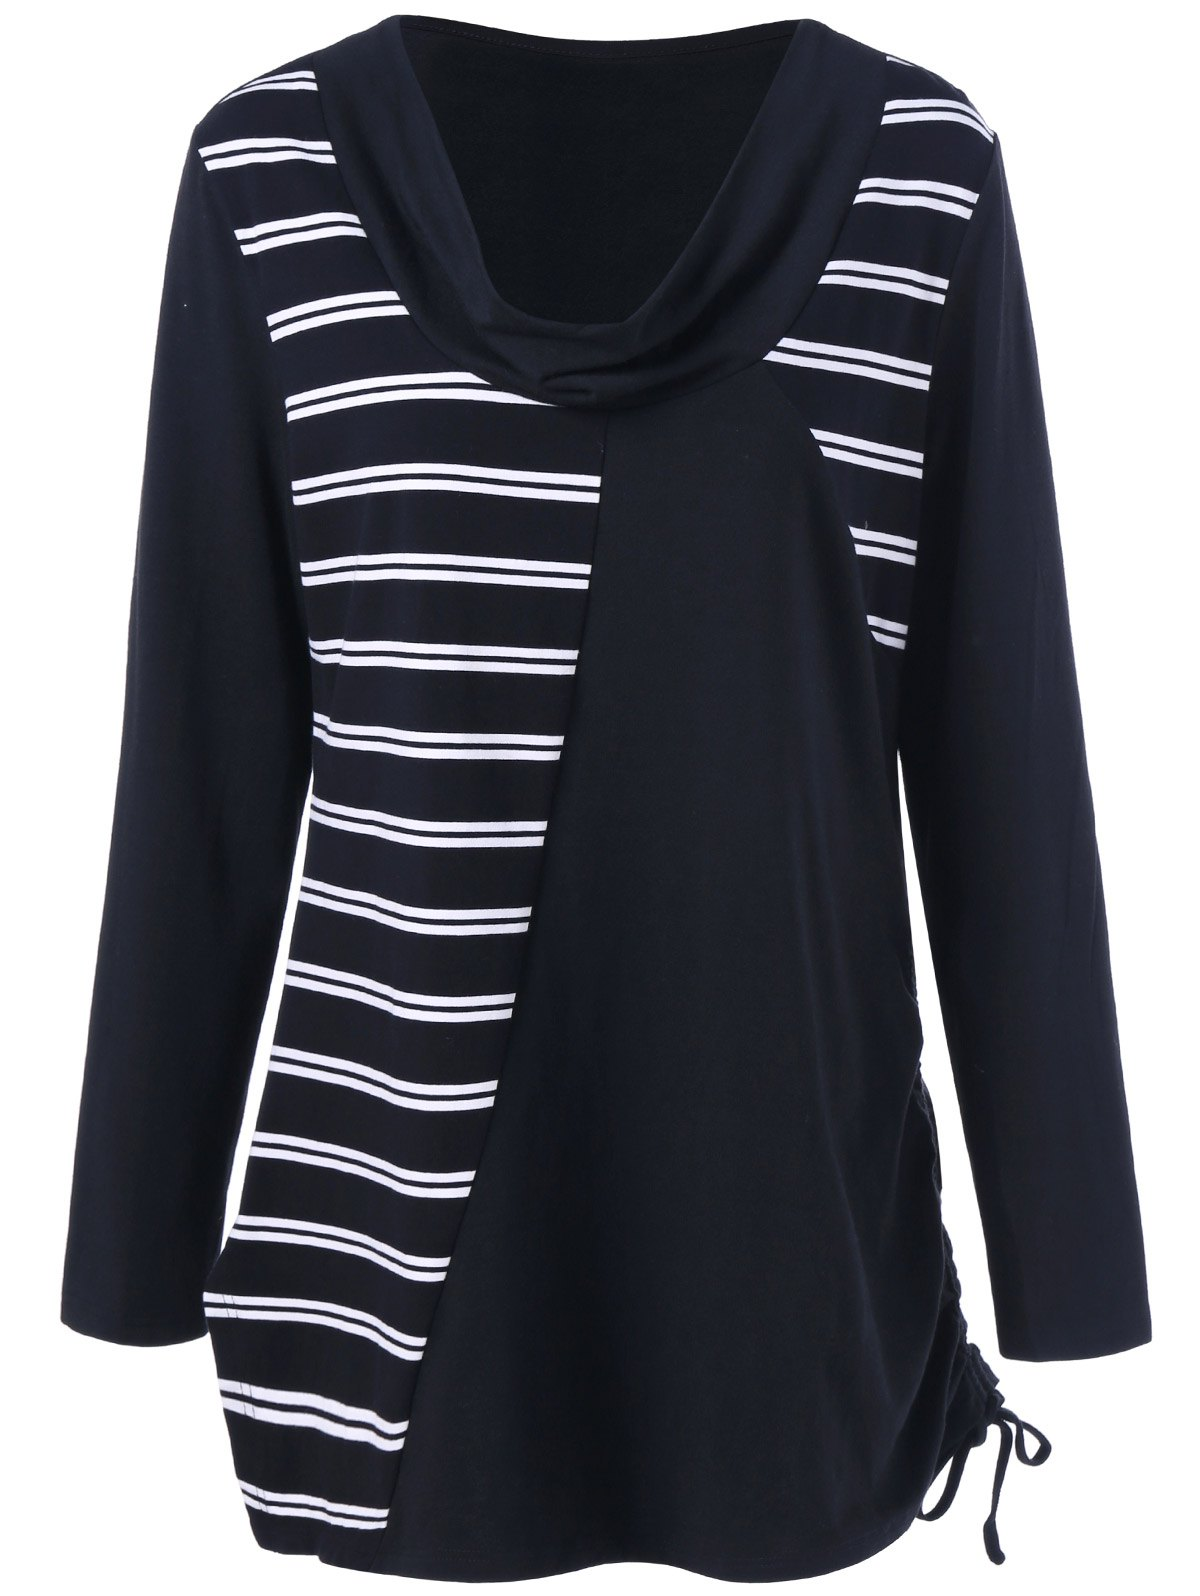 Plus Size Cowl Neck Striped Tunic T-Shirt - WHITE/BLACK XL